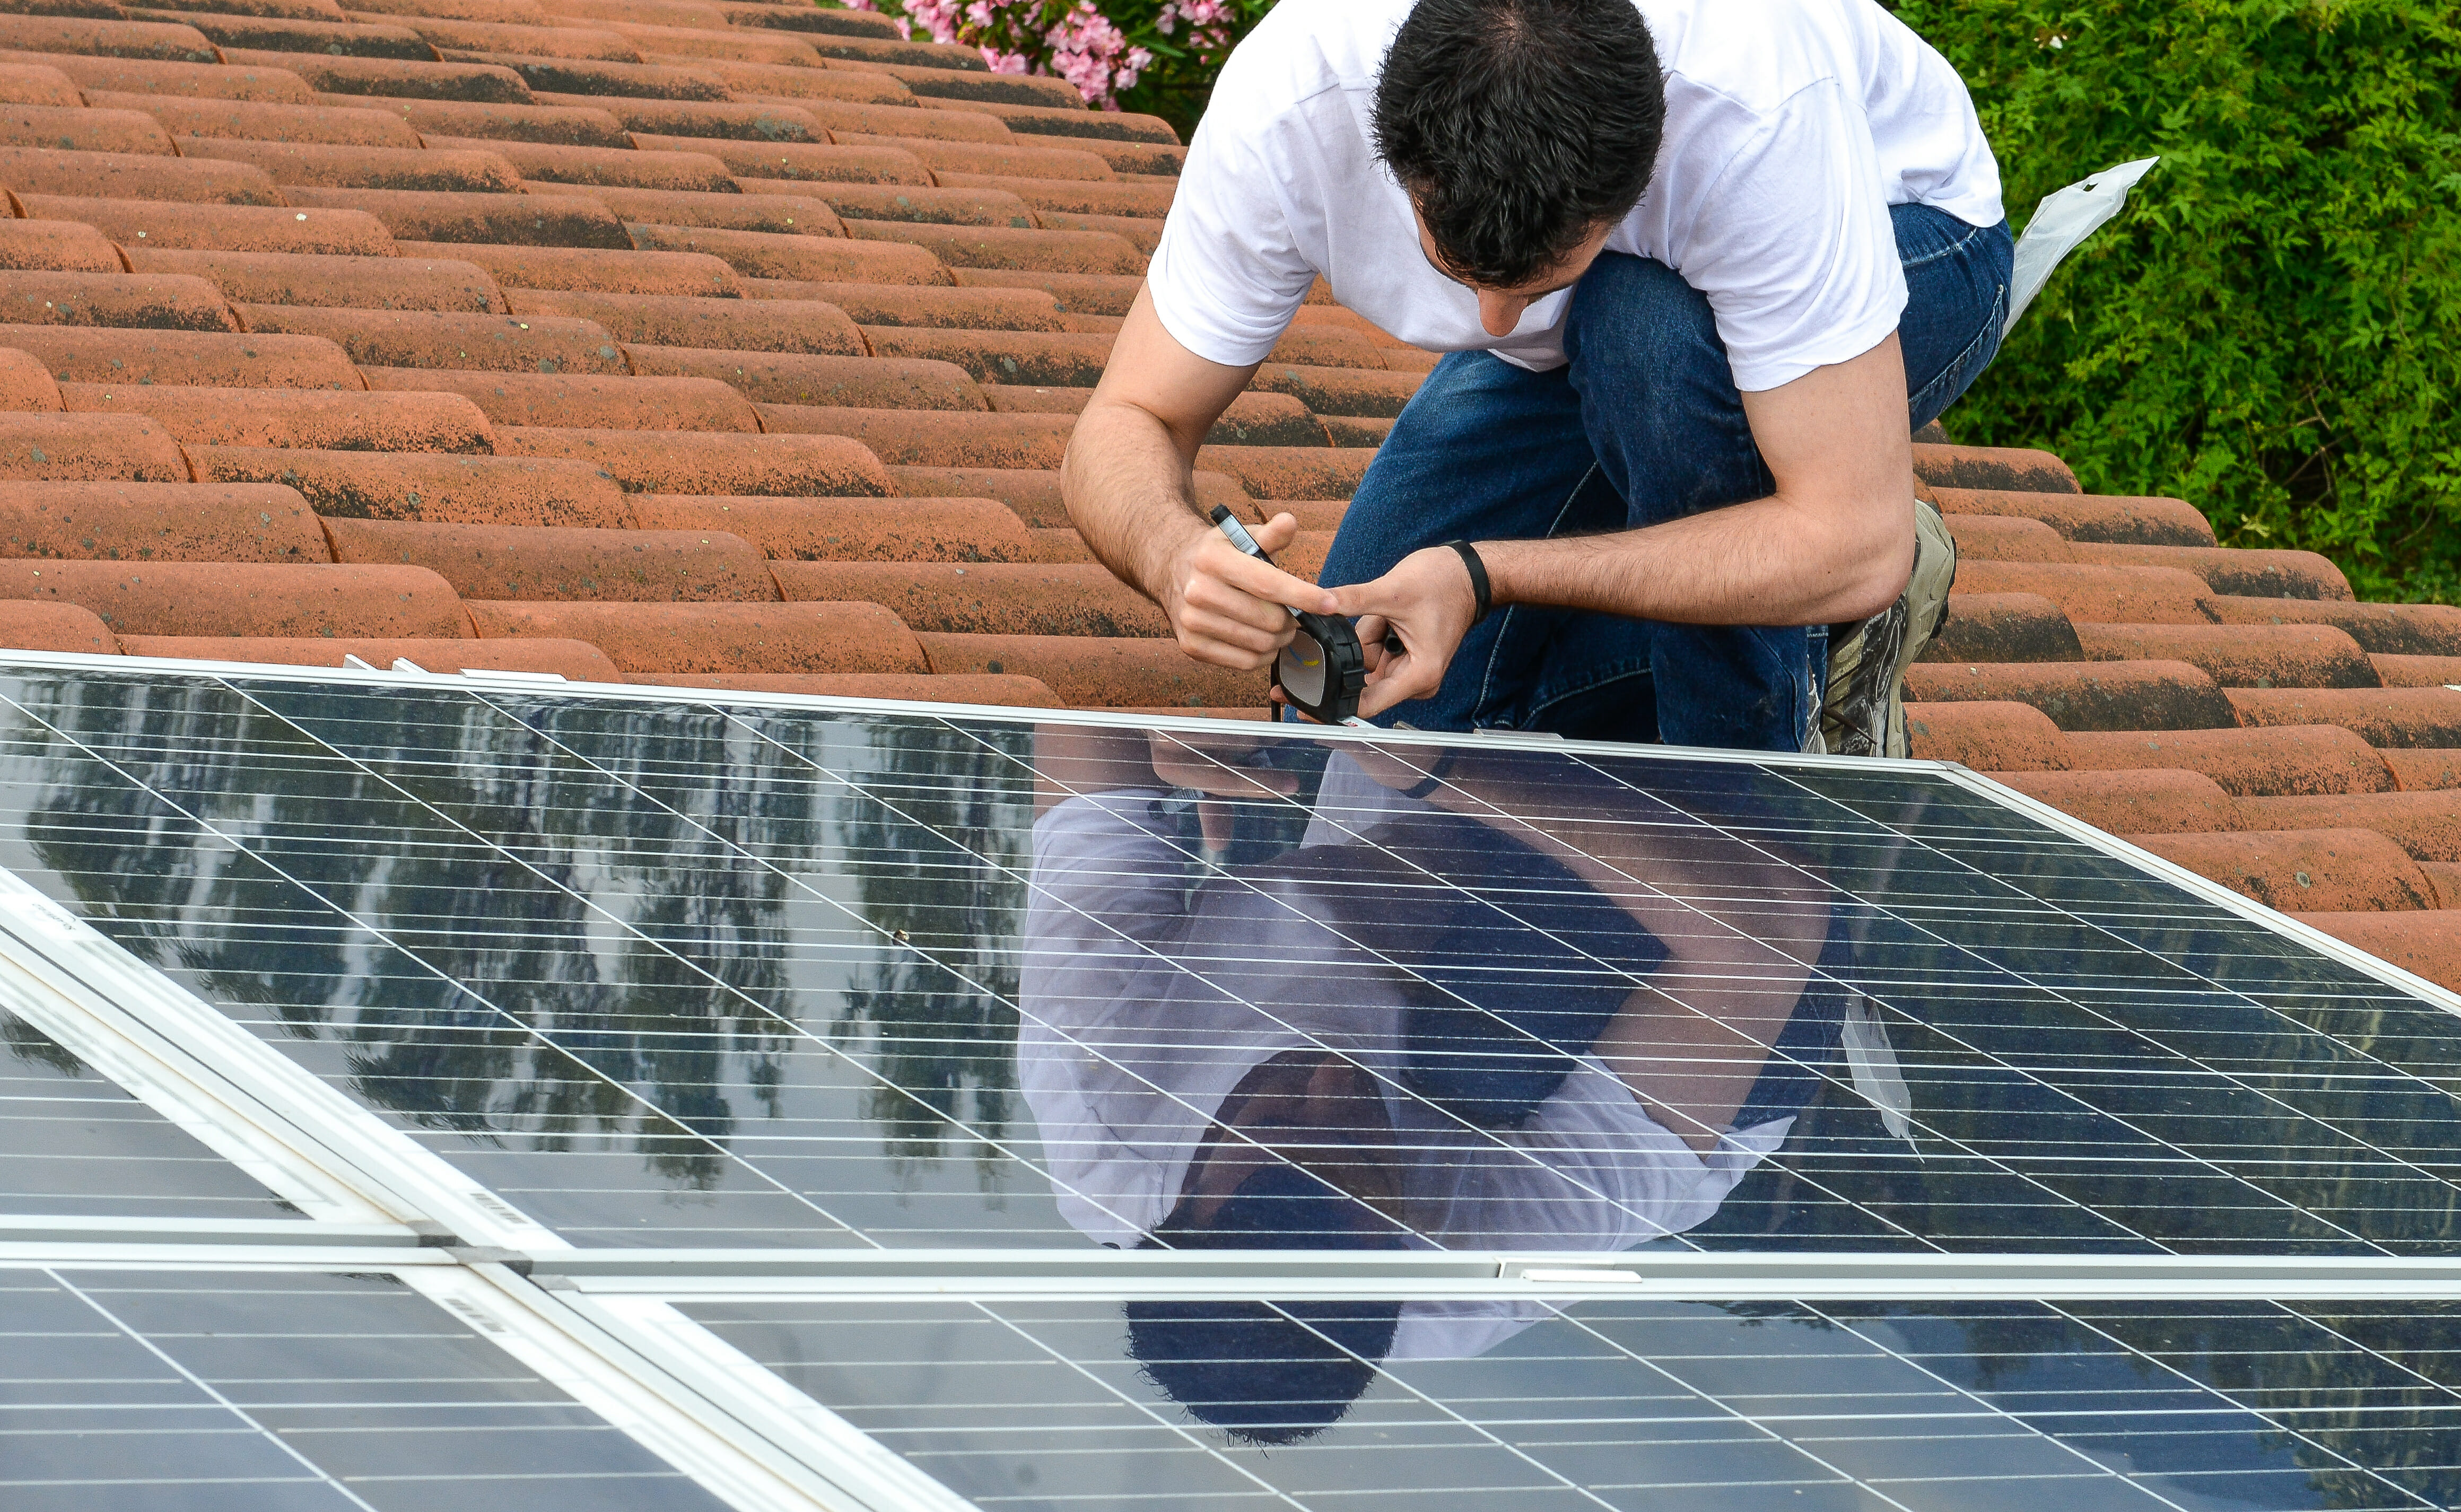 Questions To Ask Your Contractor About Your New Solar